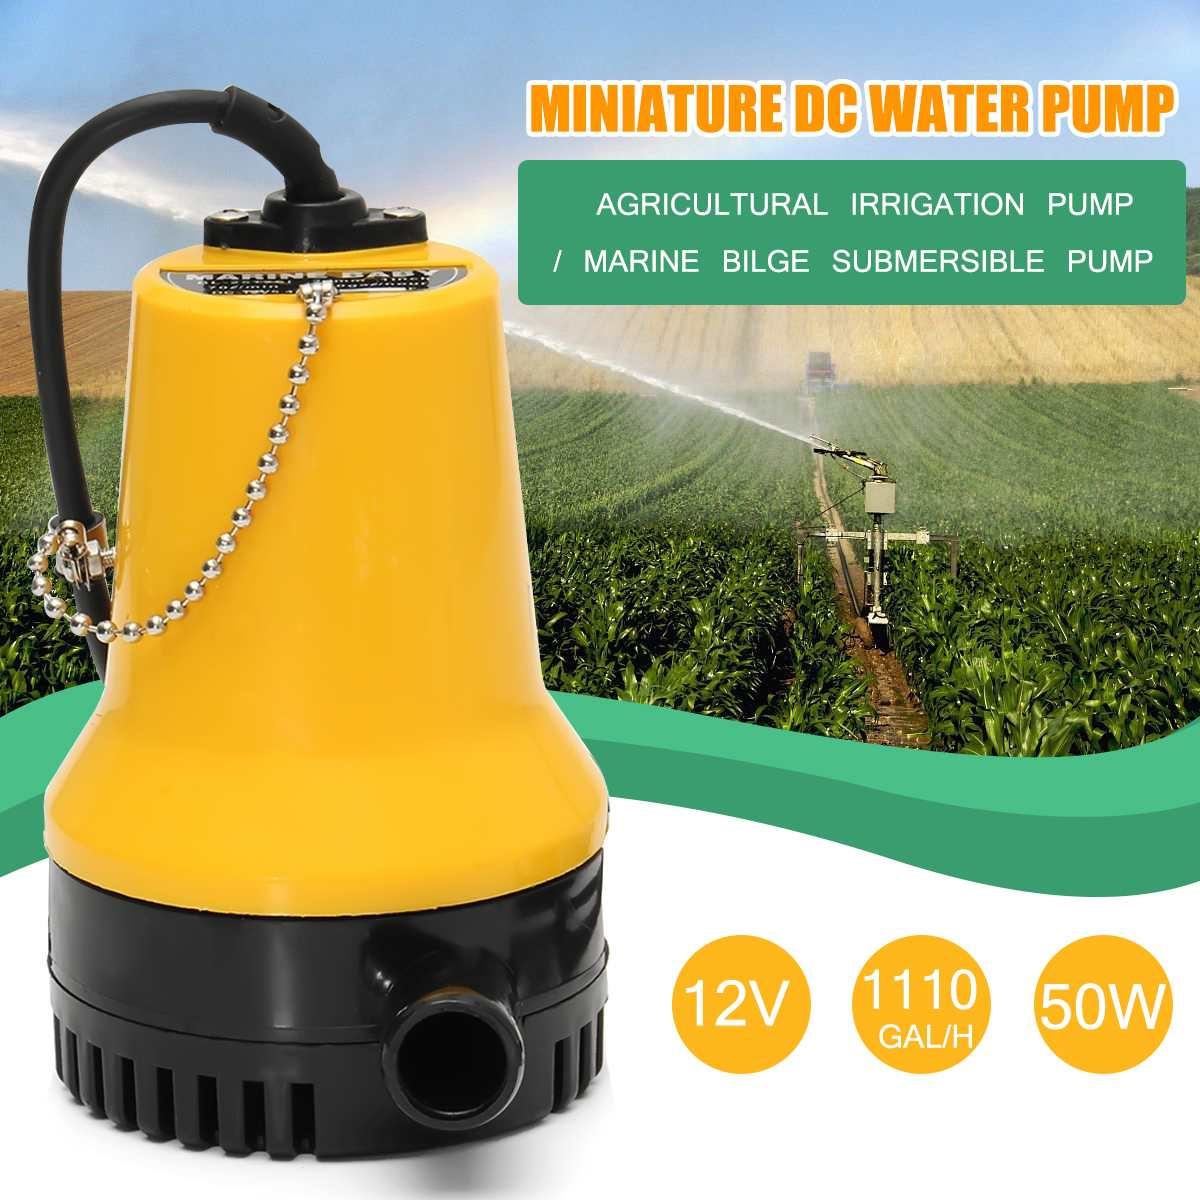 50W 4600rpm 4M DC <font><b>12V</b></font> 1110GPH Electric <font><b>Water</b></font> <font><b>Pump</b></font> Motor <font><b>Water</b></font> Circulation <font><b>Submersible</b></font> <font><b>Pump</b></font> Irrigation Fountain Fish Pond Flood image